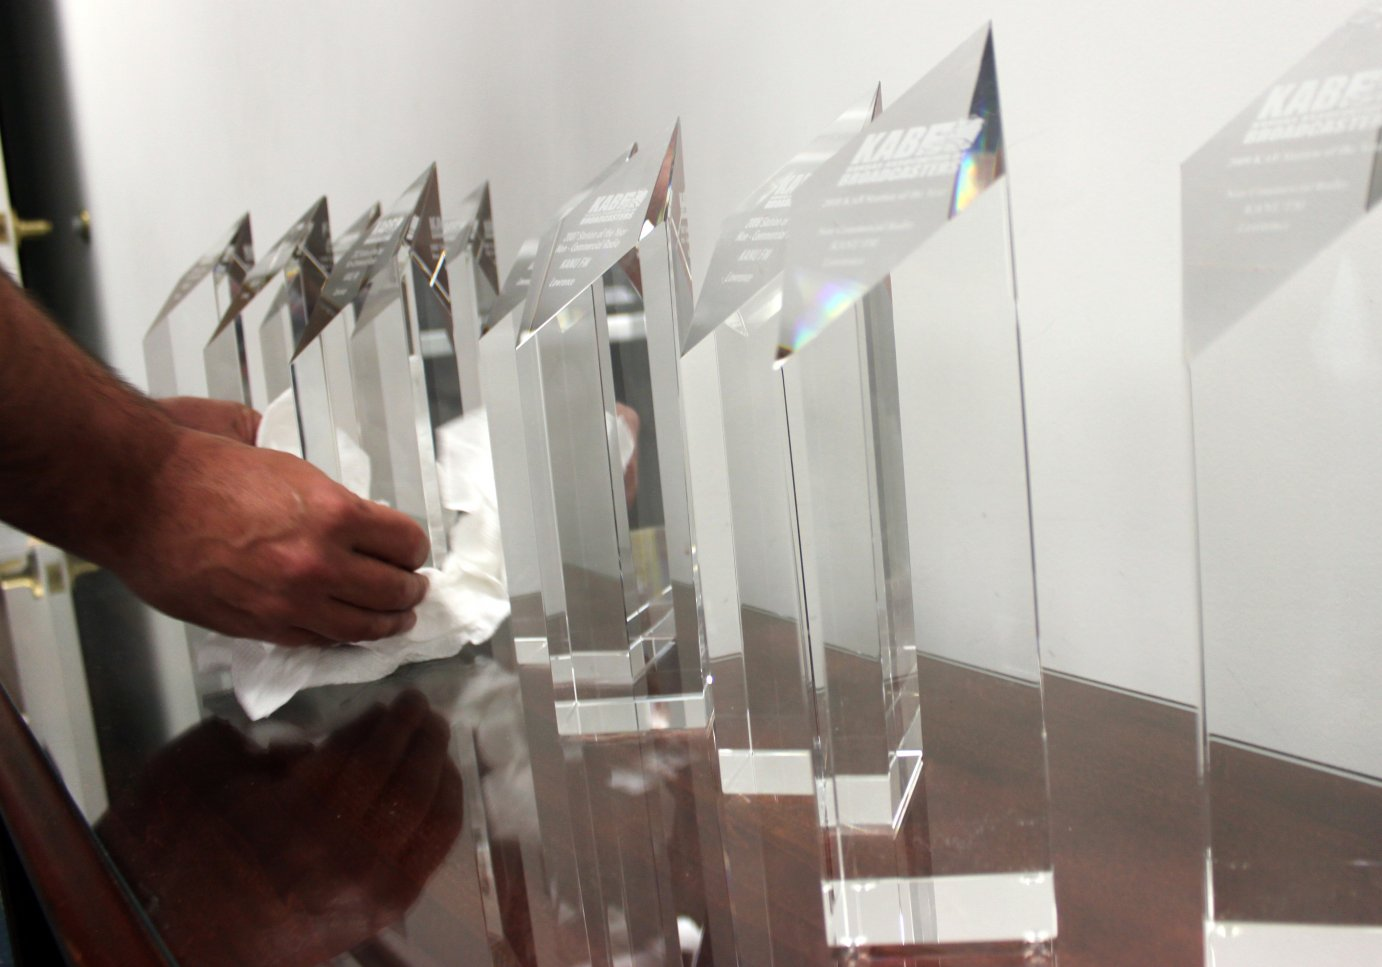 Some of the many Station of the Year awards KPR has received from the KAB since 1996.